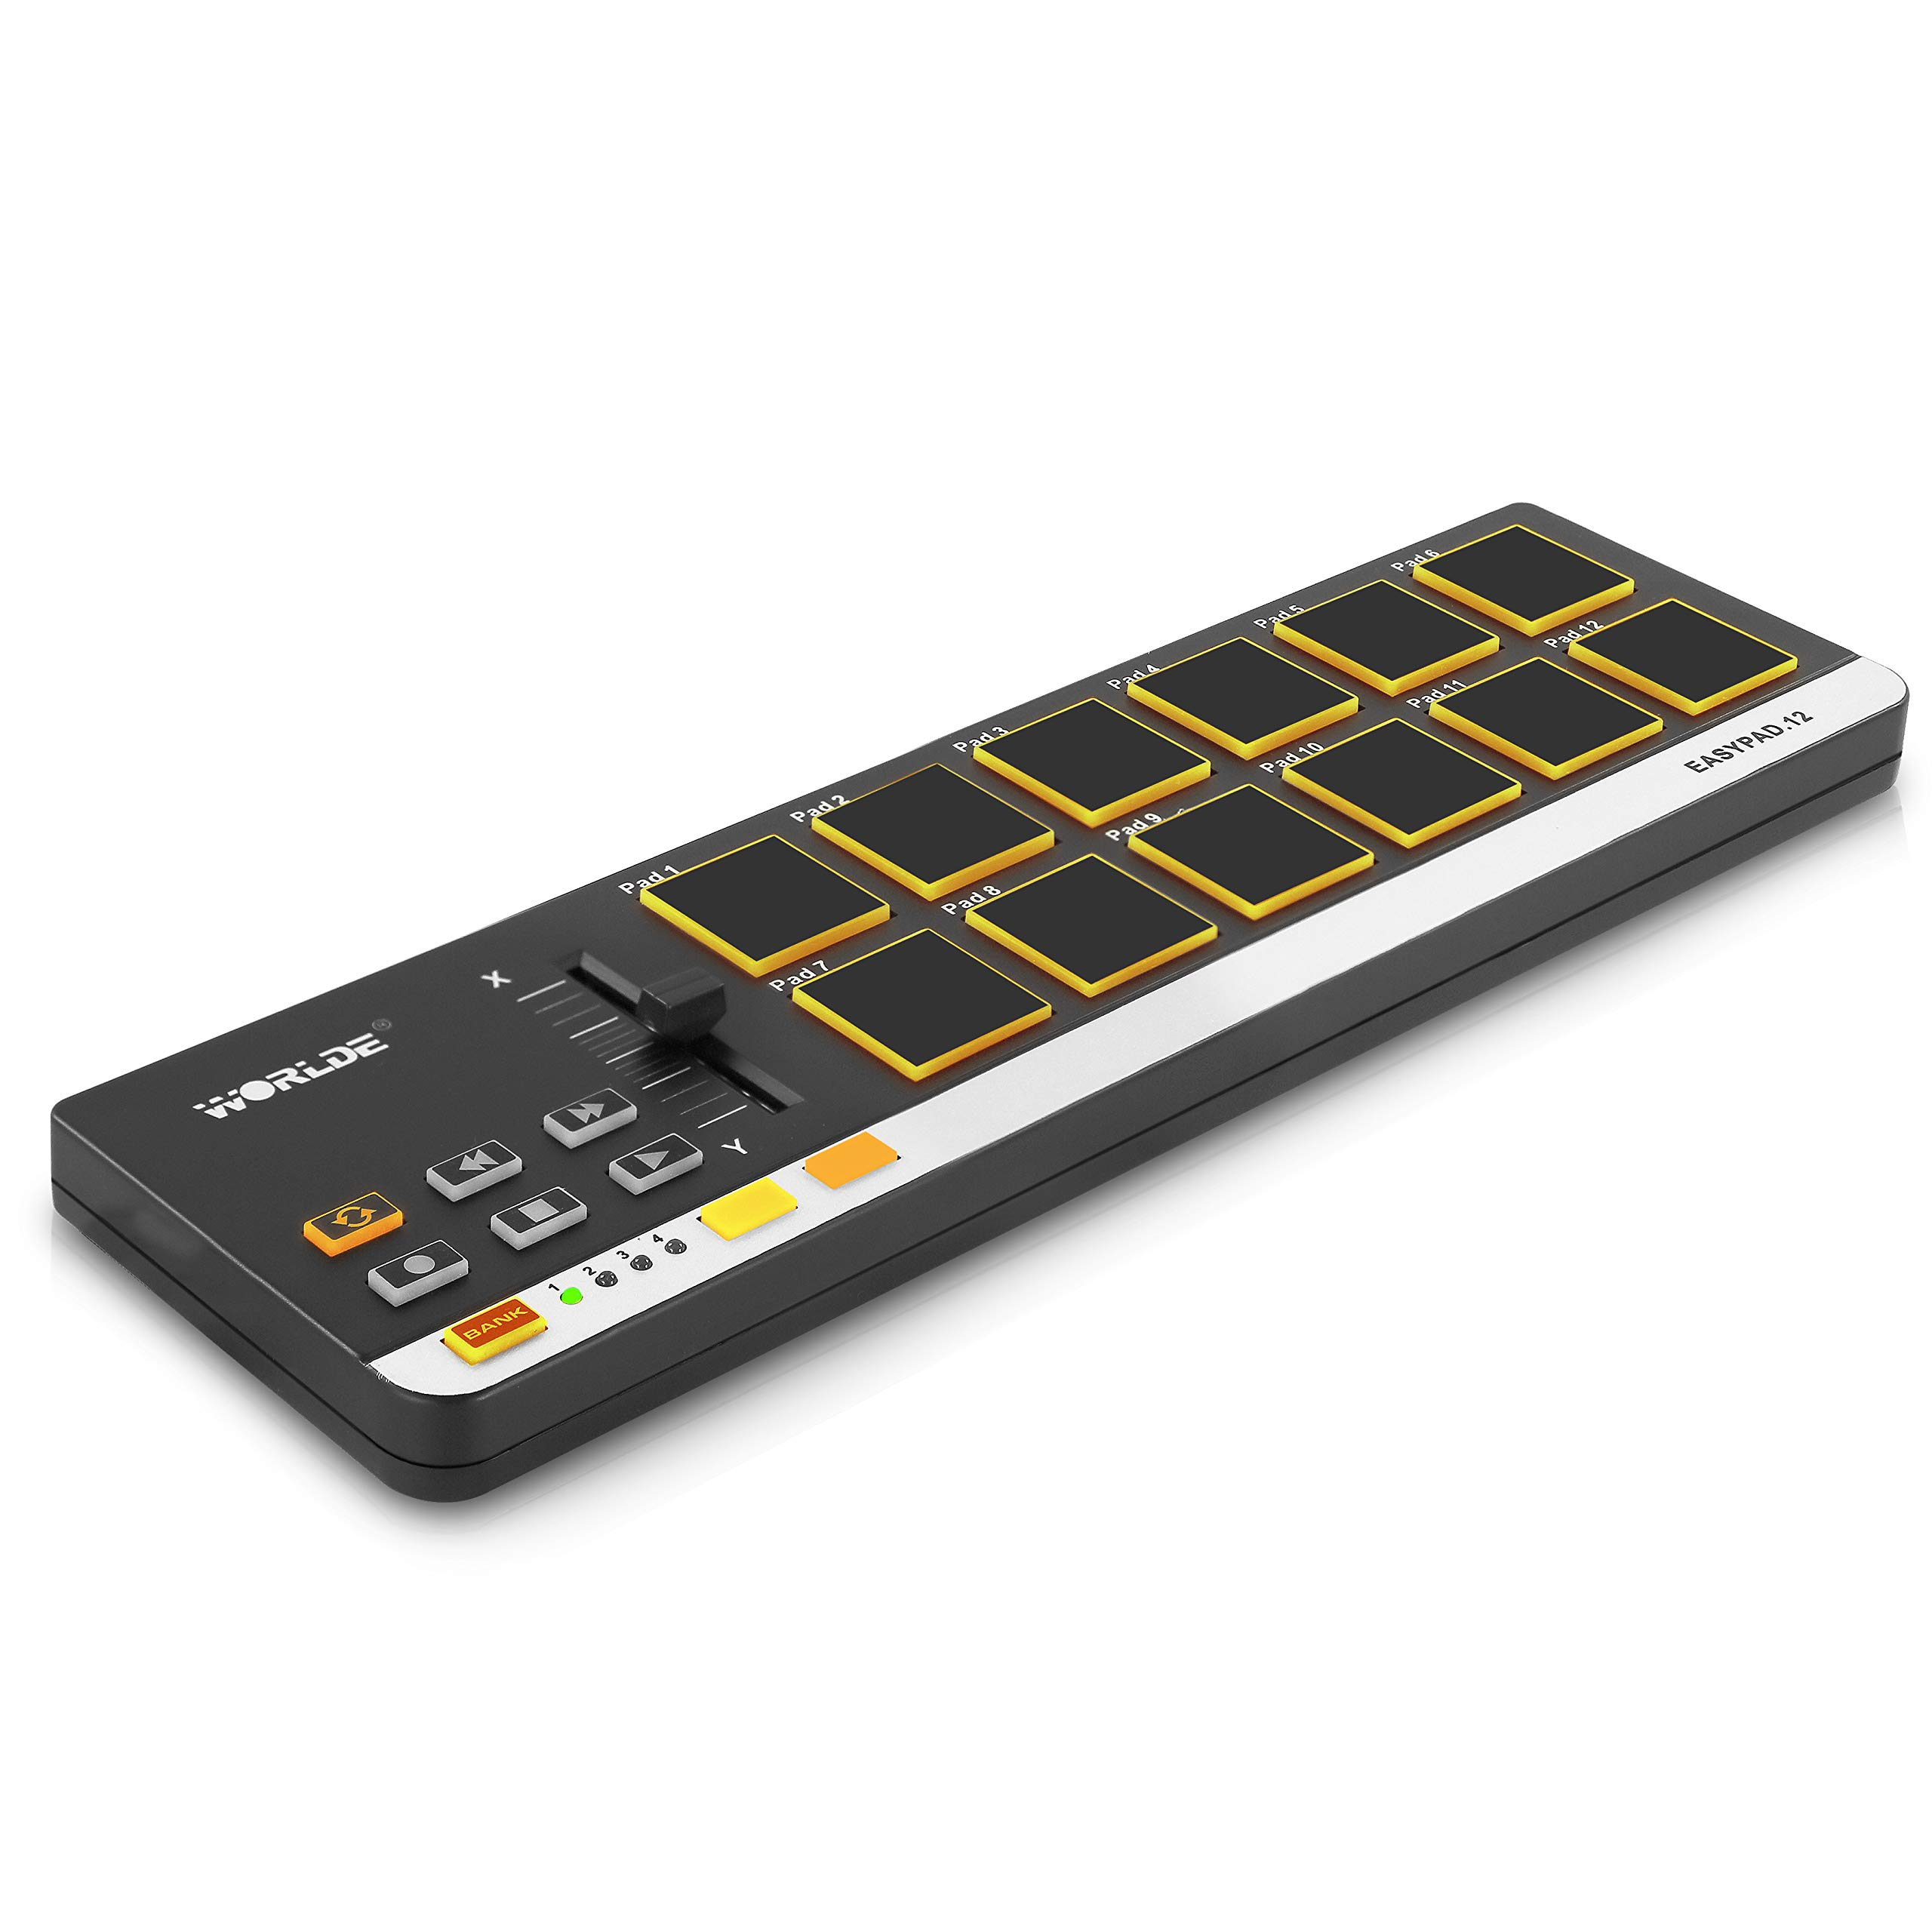 USB MIDI Controller Drum Pad - Mini Portable Beat Maker Workstation Equipment w/ 12 Drum Pads, DJ Fader Slider & Transport Buttons - Control any DAW Software Kit for Laptop Recording - Pyle PMIDIPD20